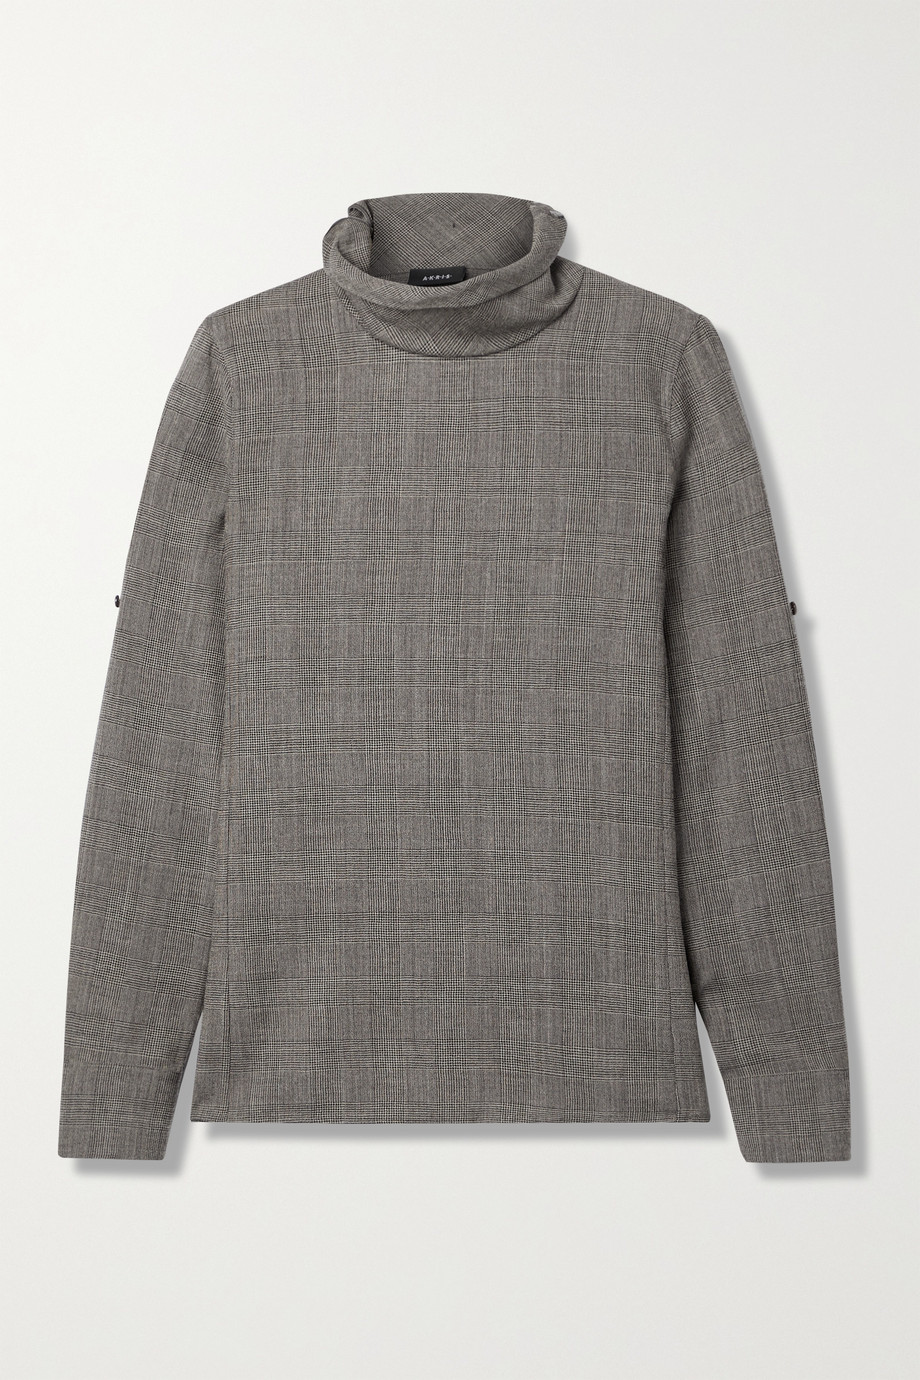 Akris Prince of Wales checked wool turtleneck top